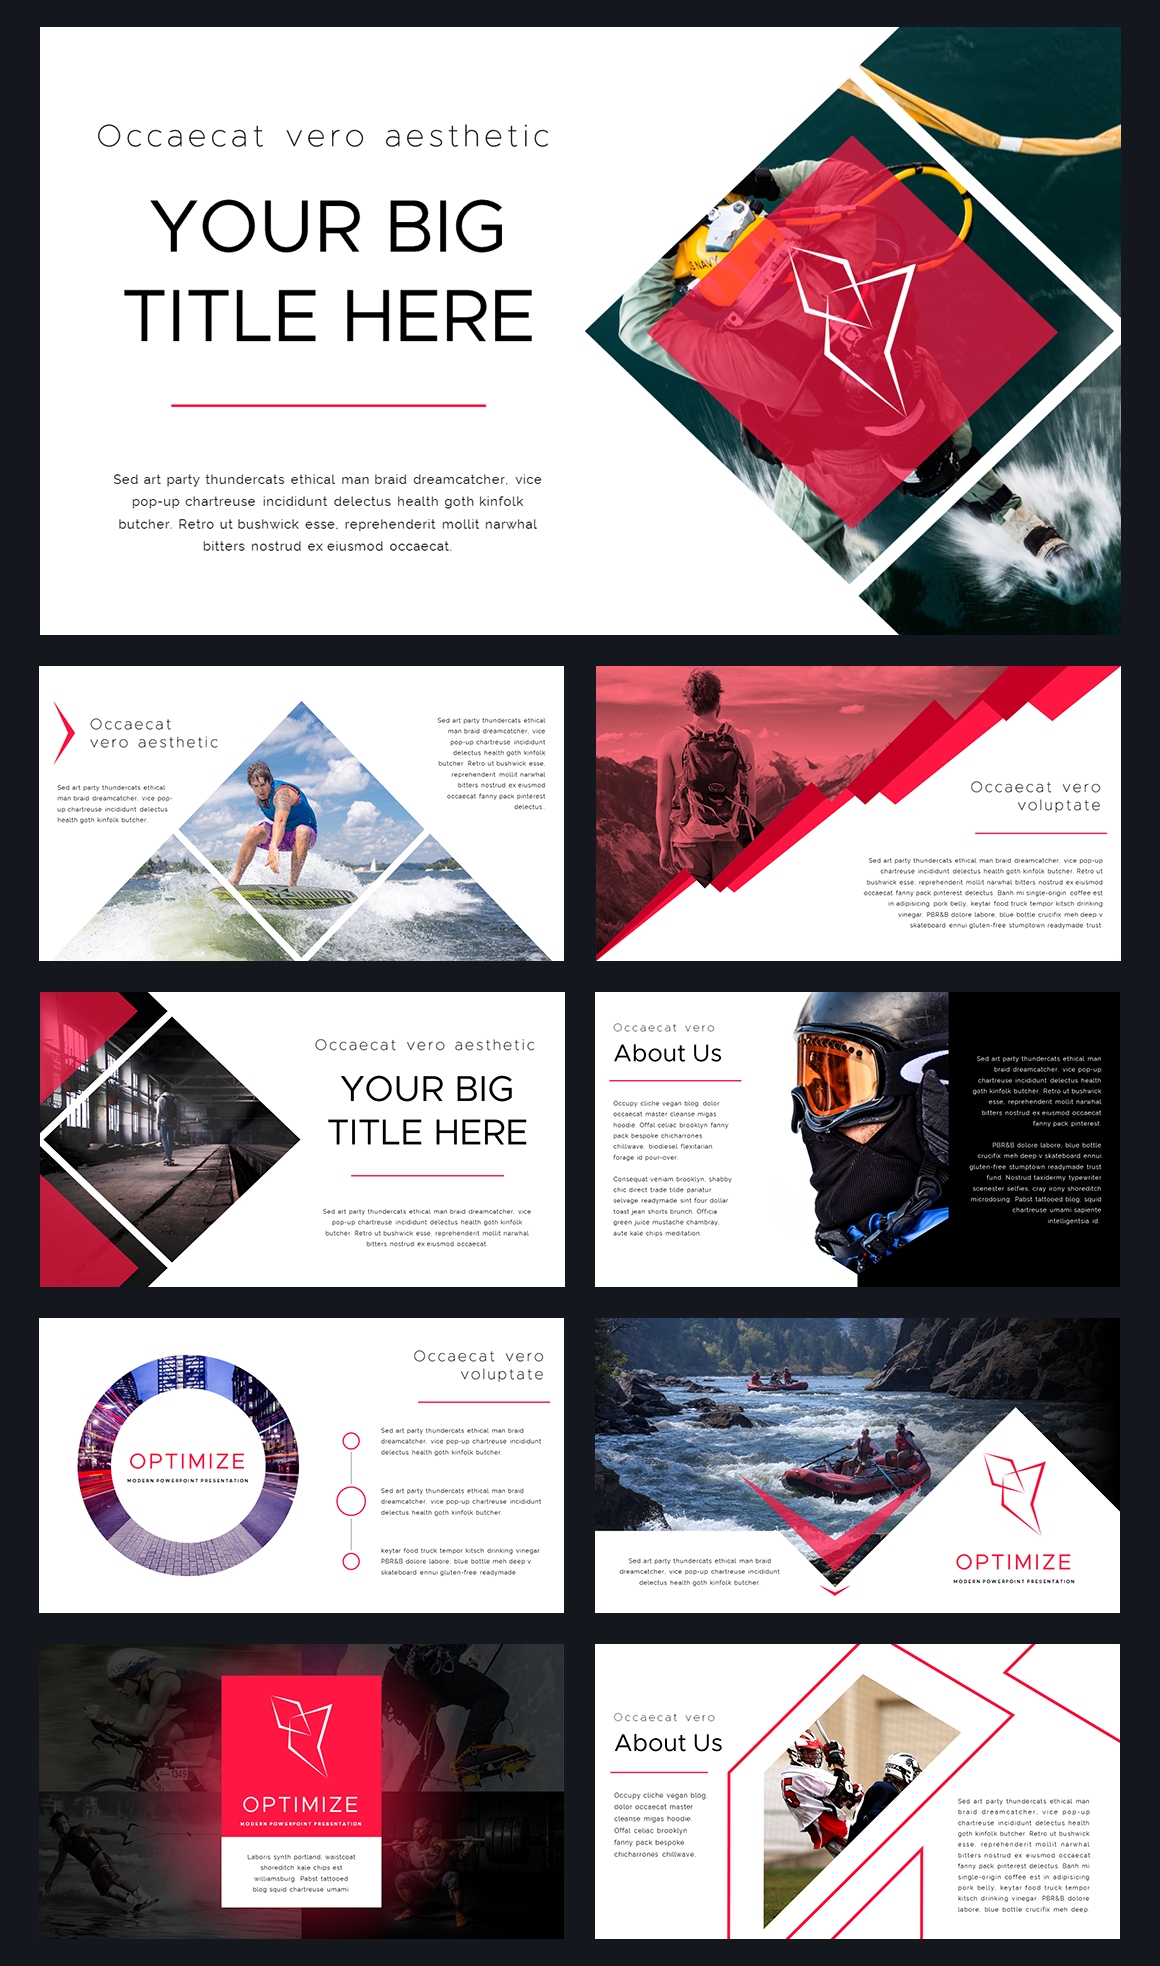 Pin By Lucinda On School Pinterest Template Modern And Layouts